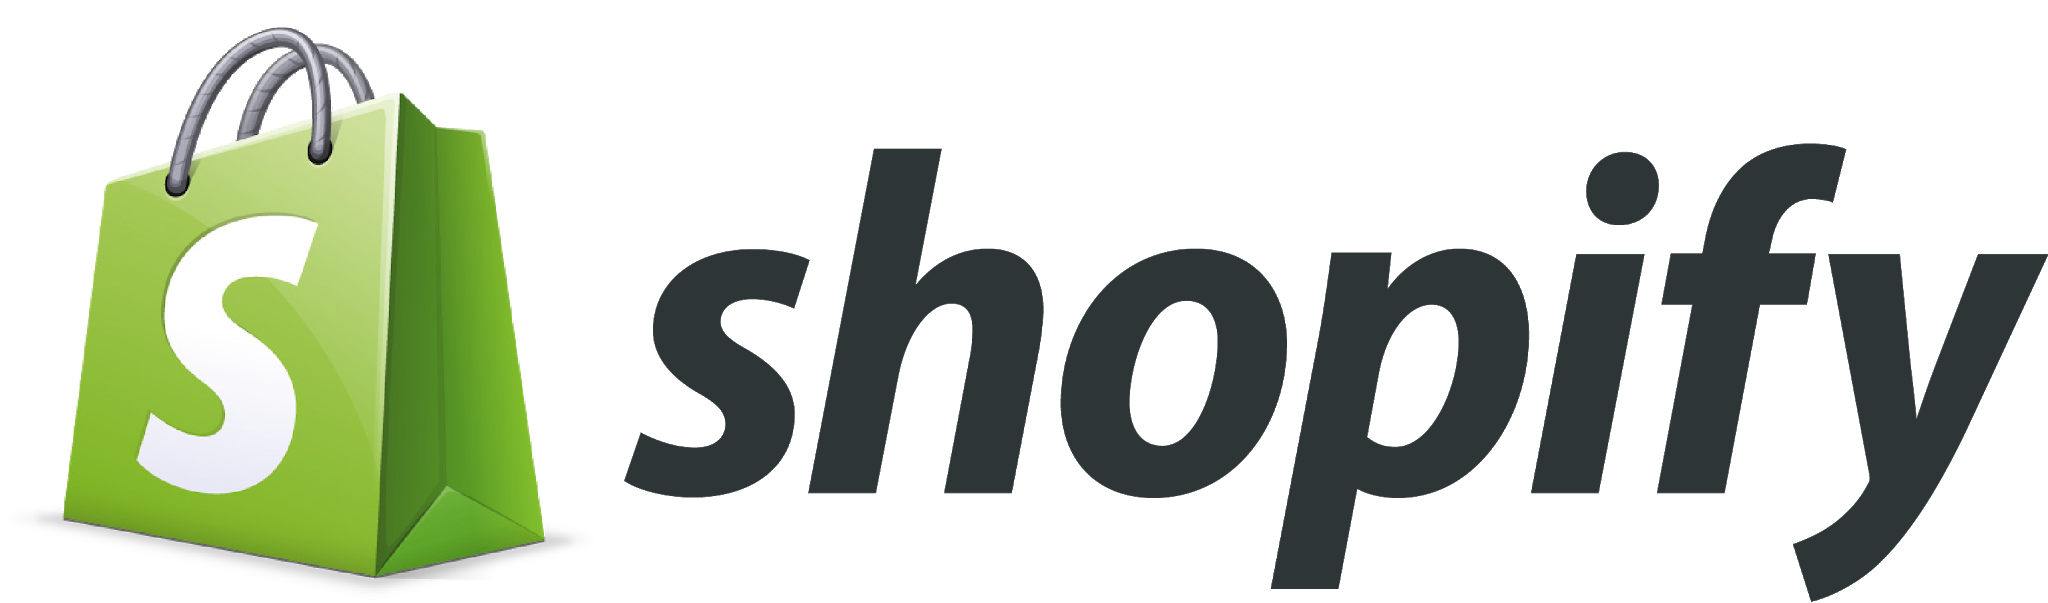 Shopify - online credit card processing